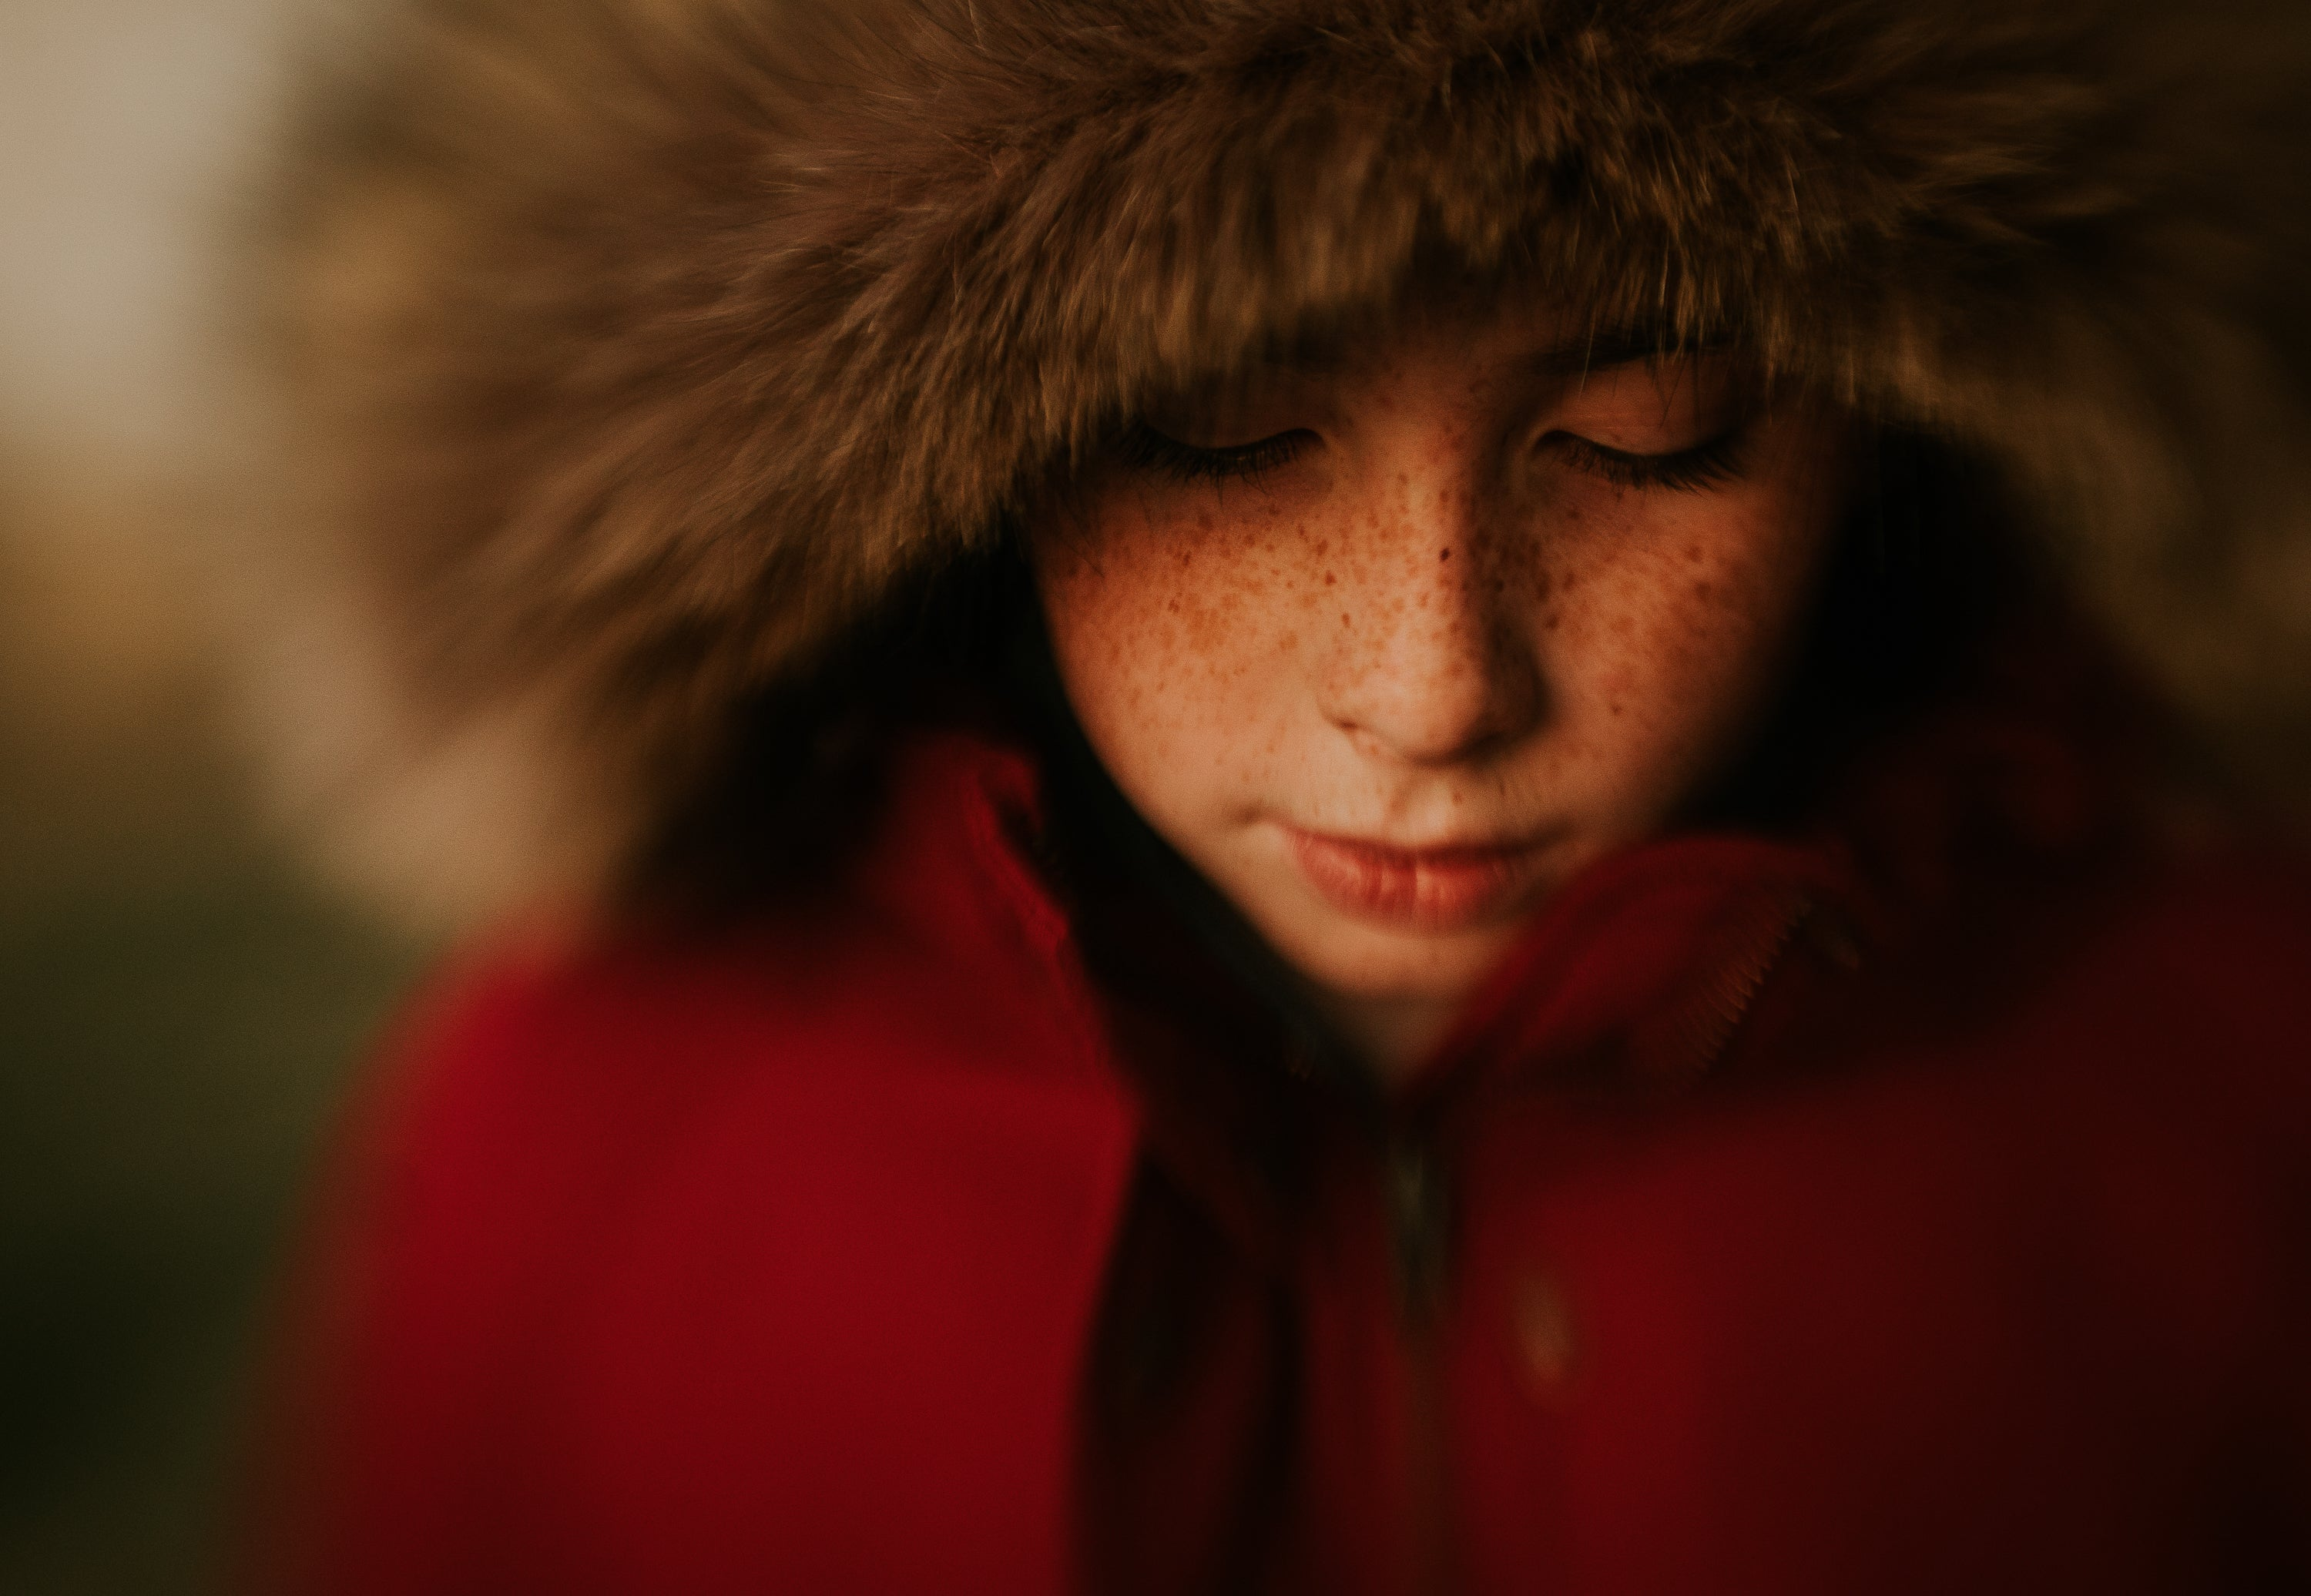 boy with freckles and red lips in red jacket with fur journey story amy cyphers